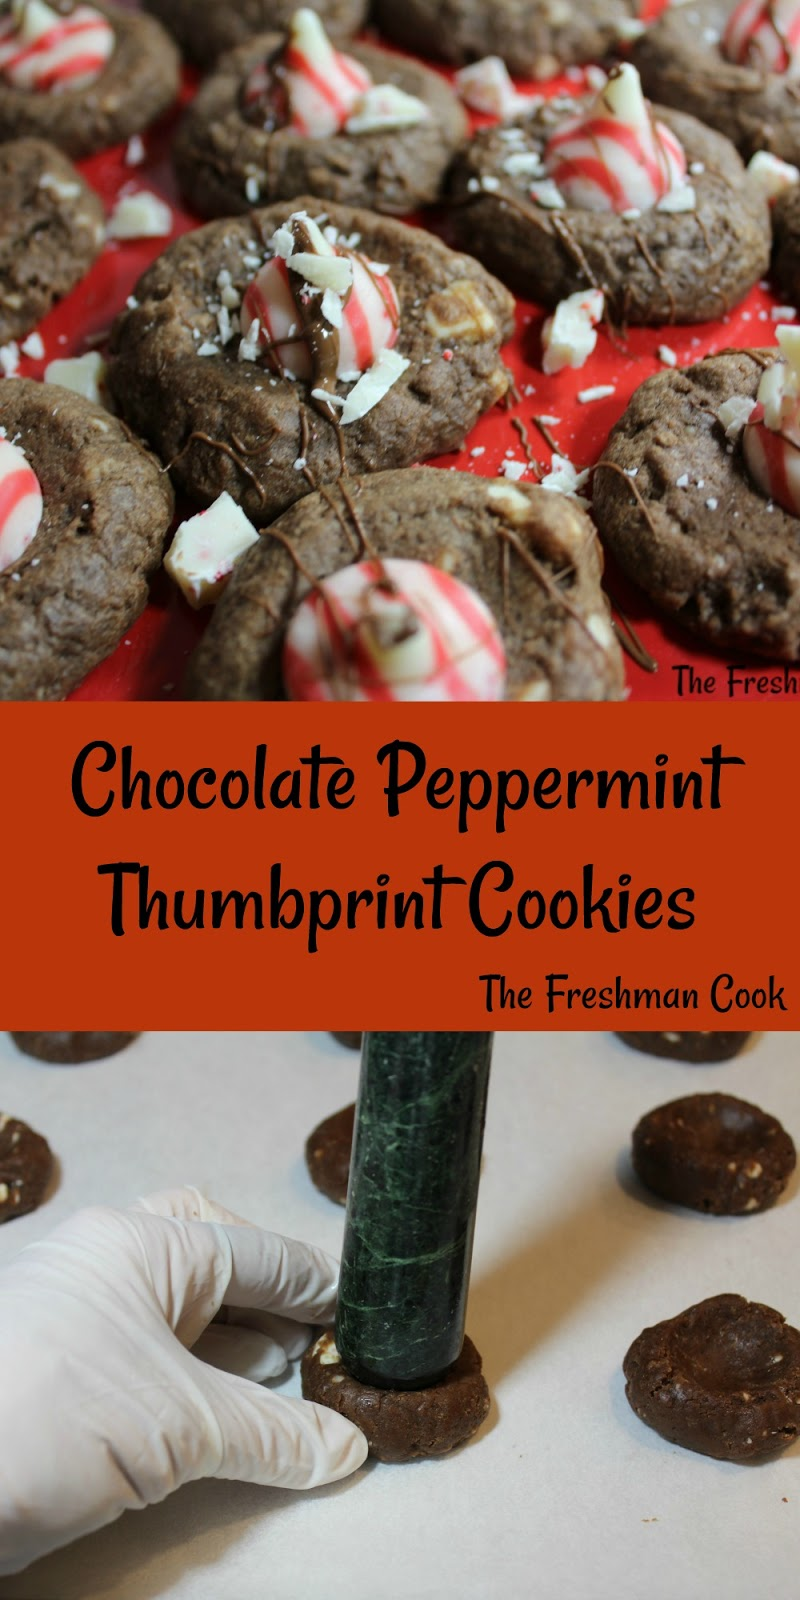 The Freshman Cook Thumbprint Cookies